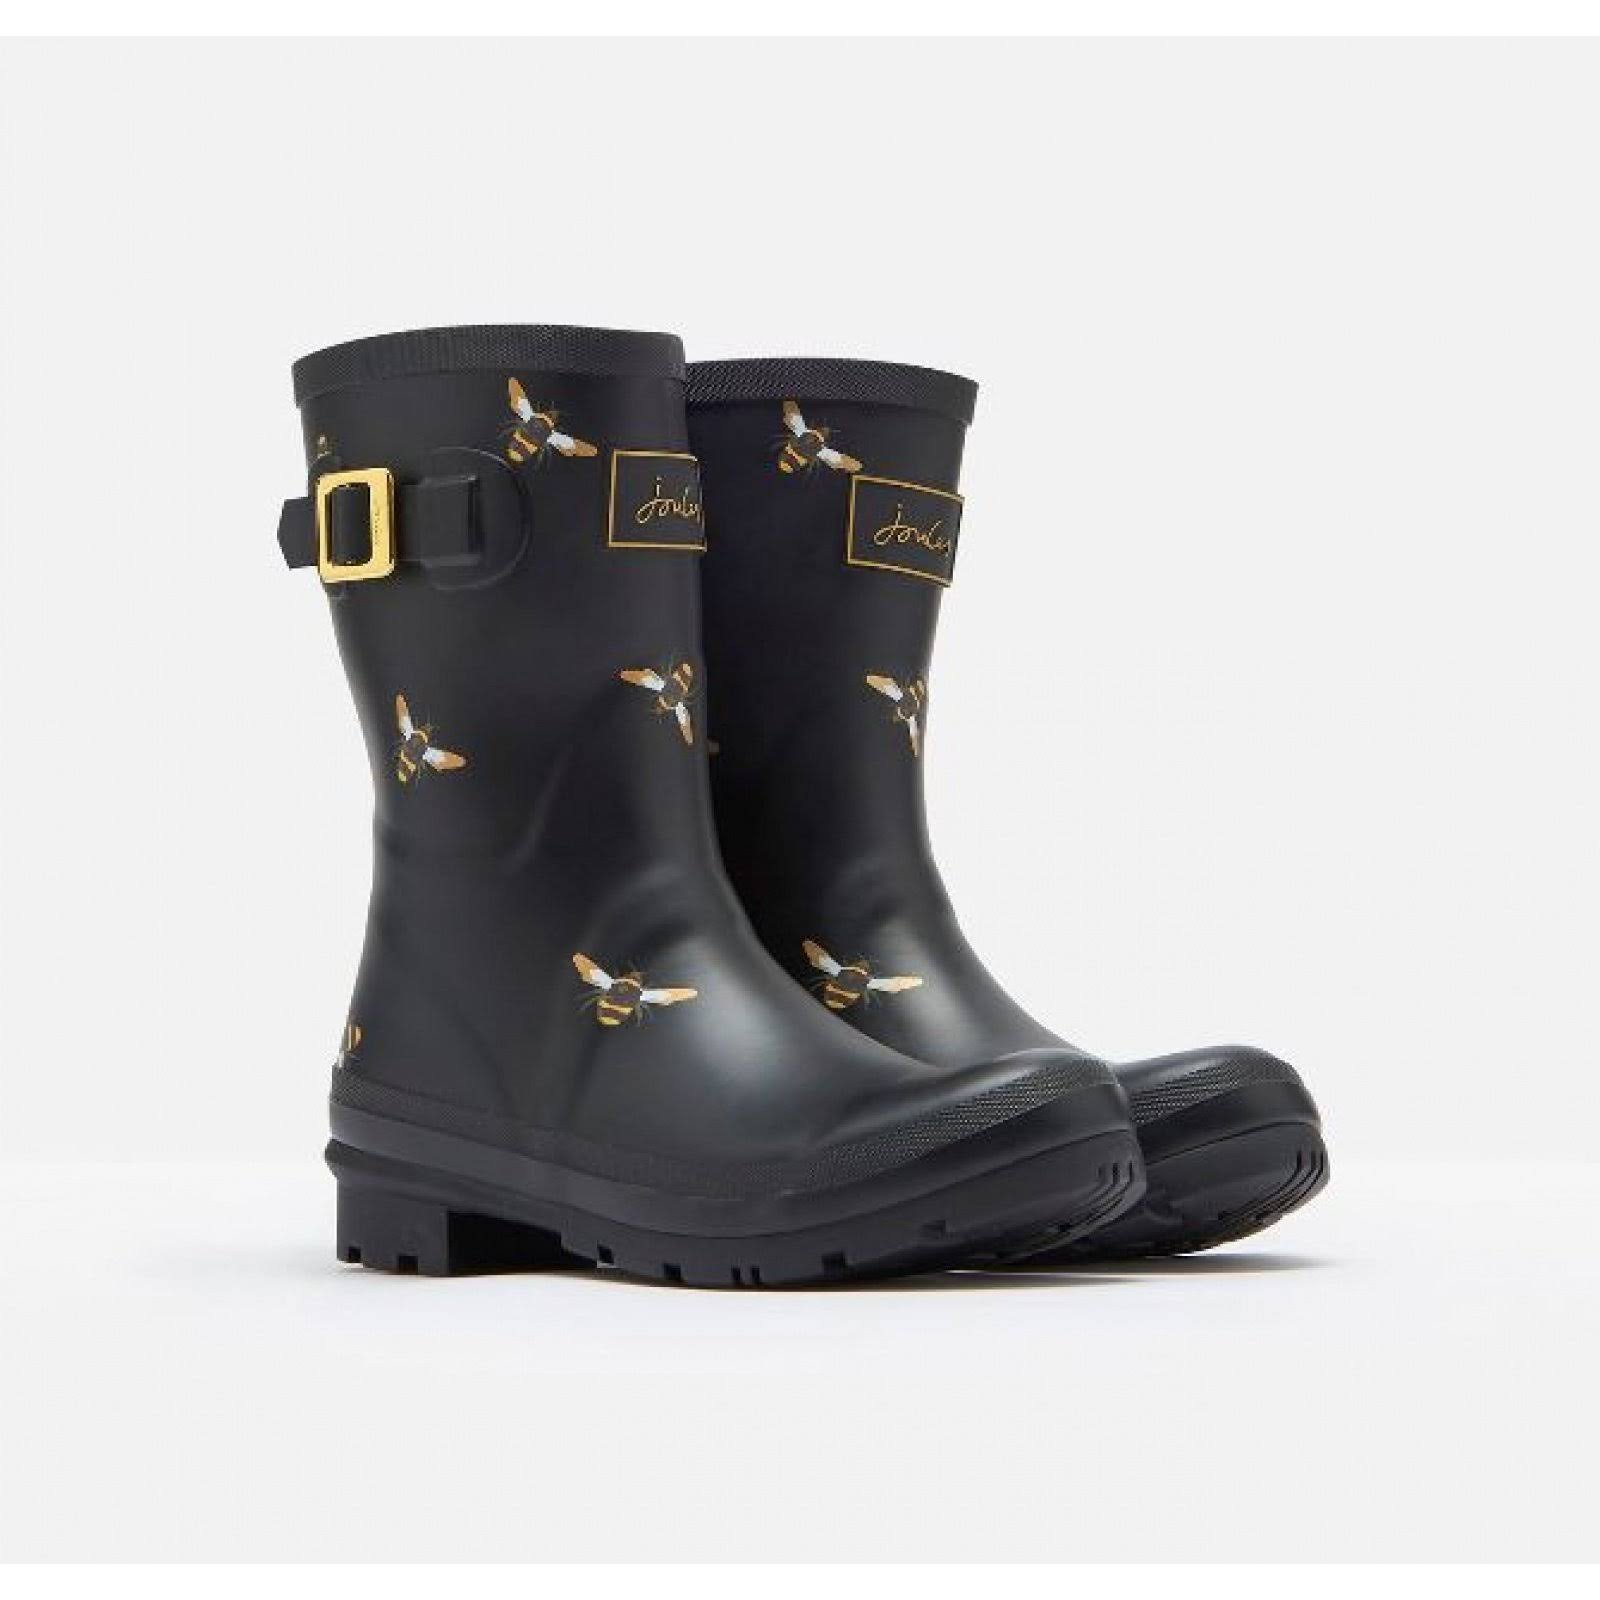 Joules Molly Mid Height Printed Welly Black Metallic Bees